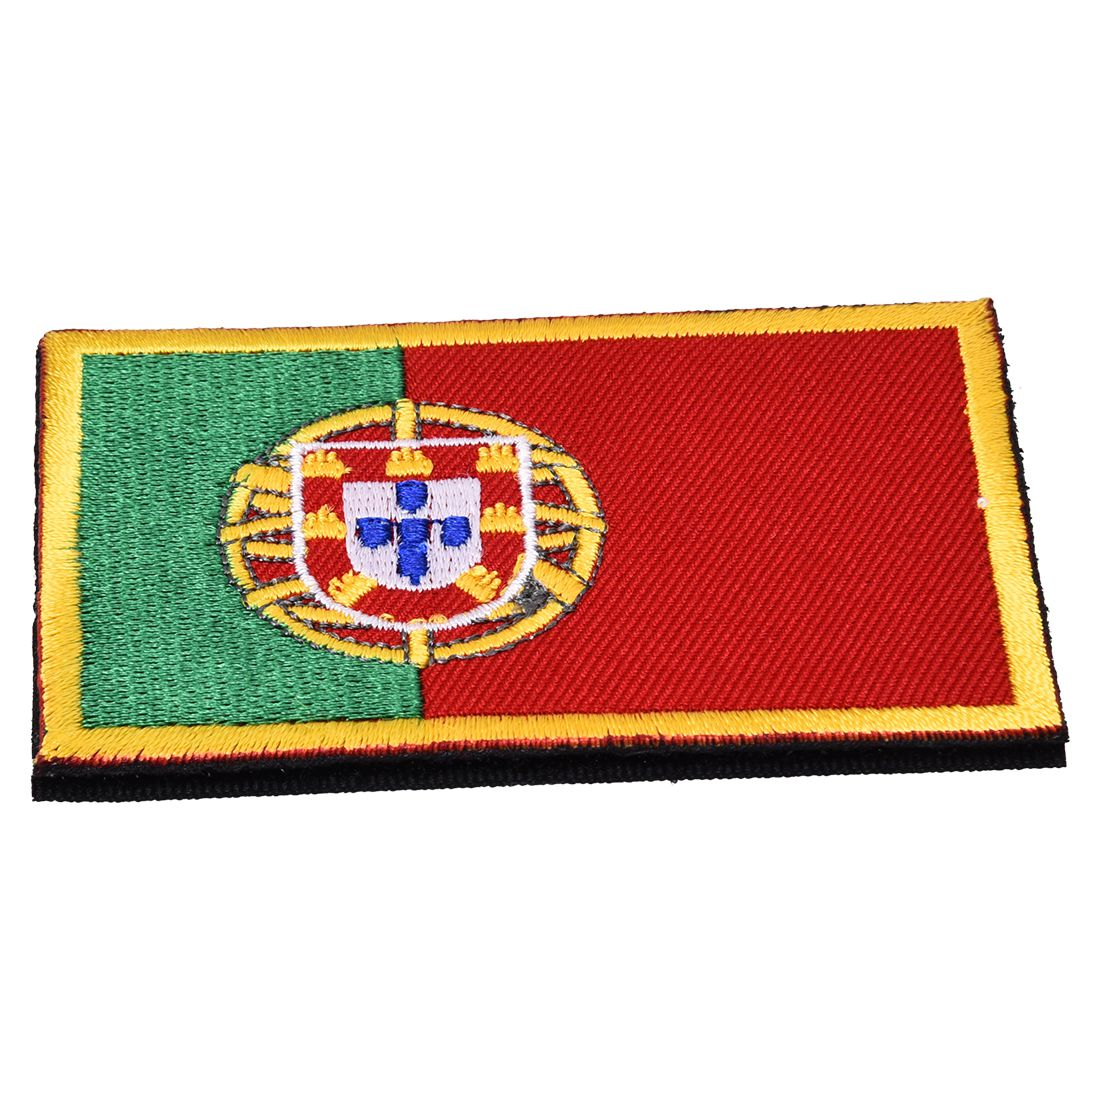 Leather Keyring Engraved Coimbra City Portugal Flag